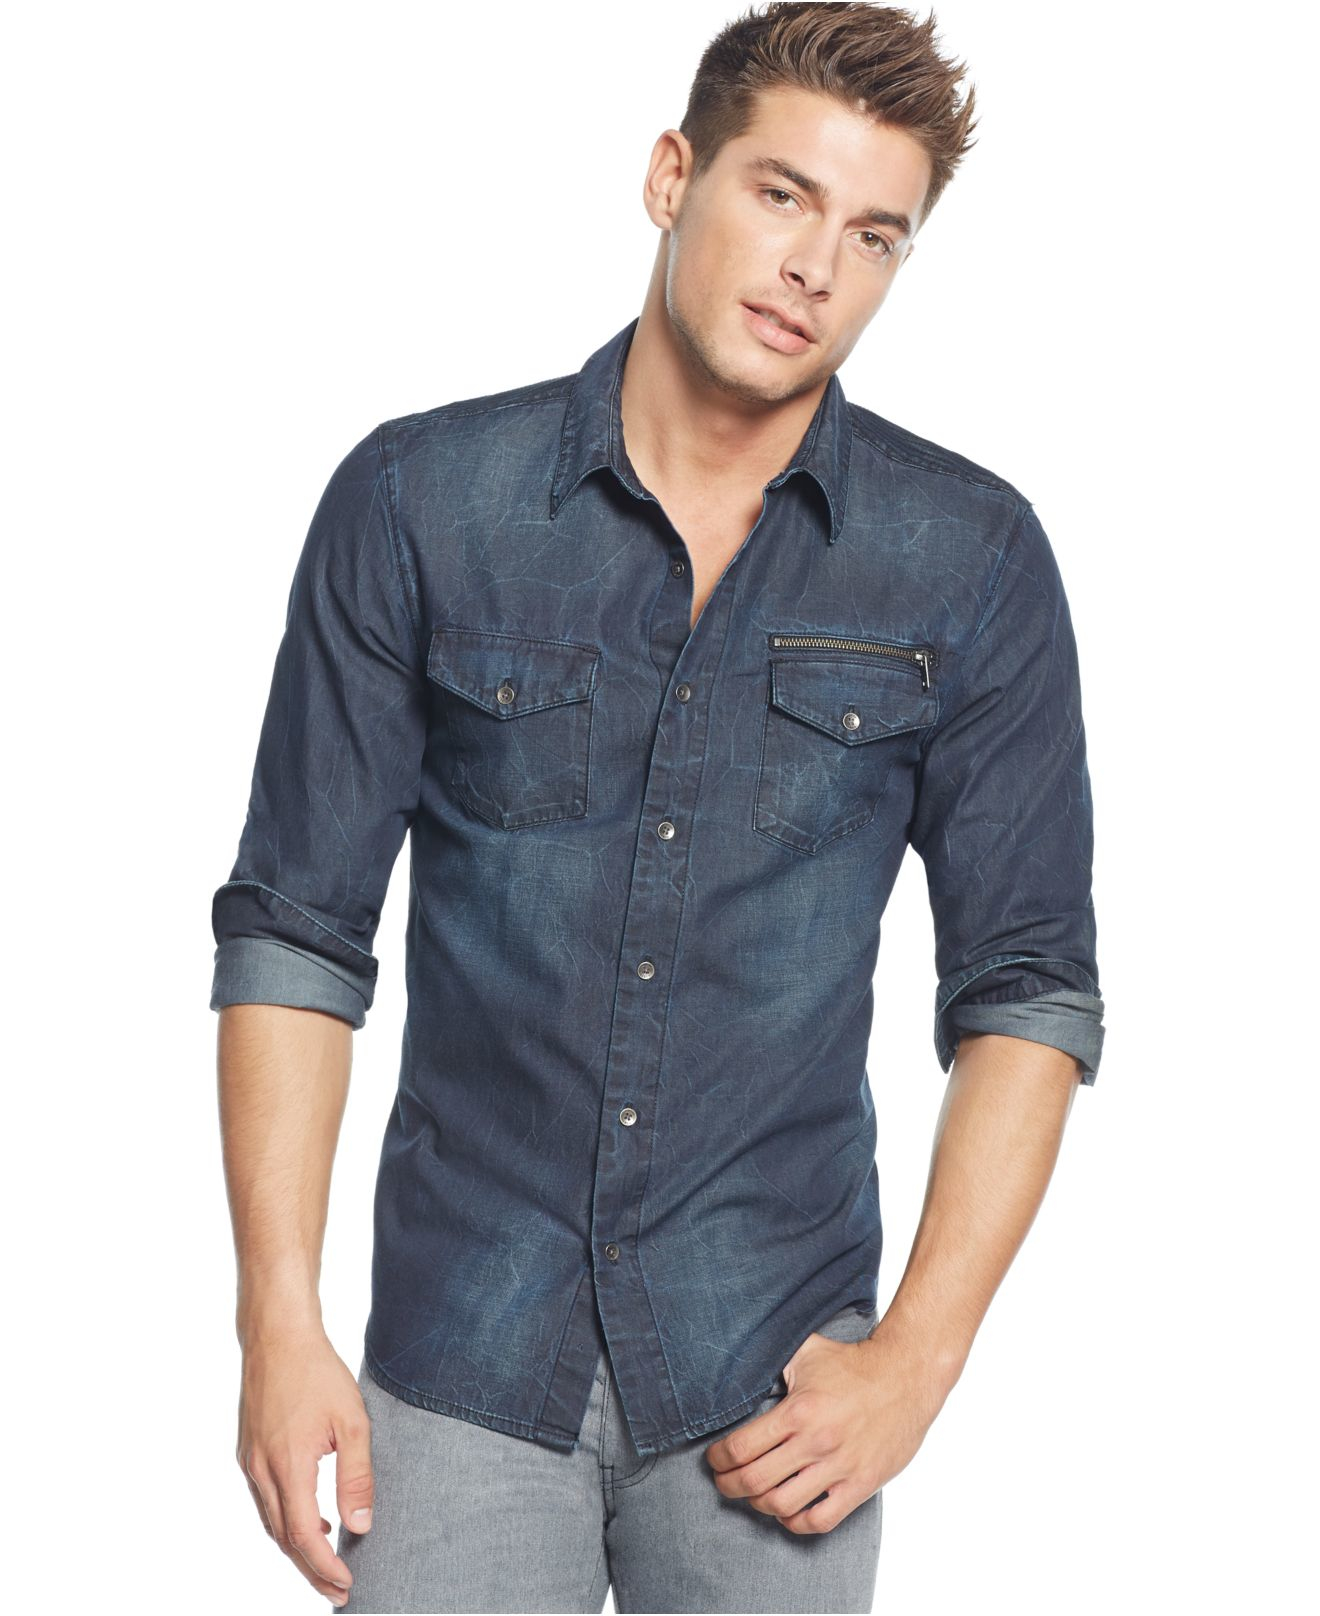 guess slim fit chambray moto shirt in blue for men lyst